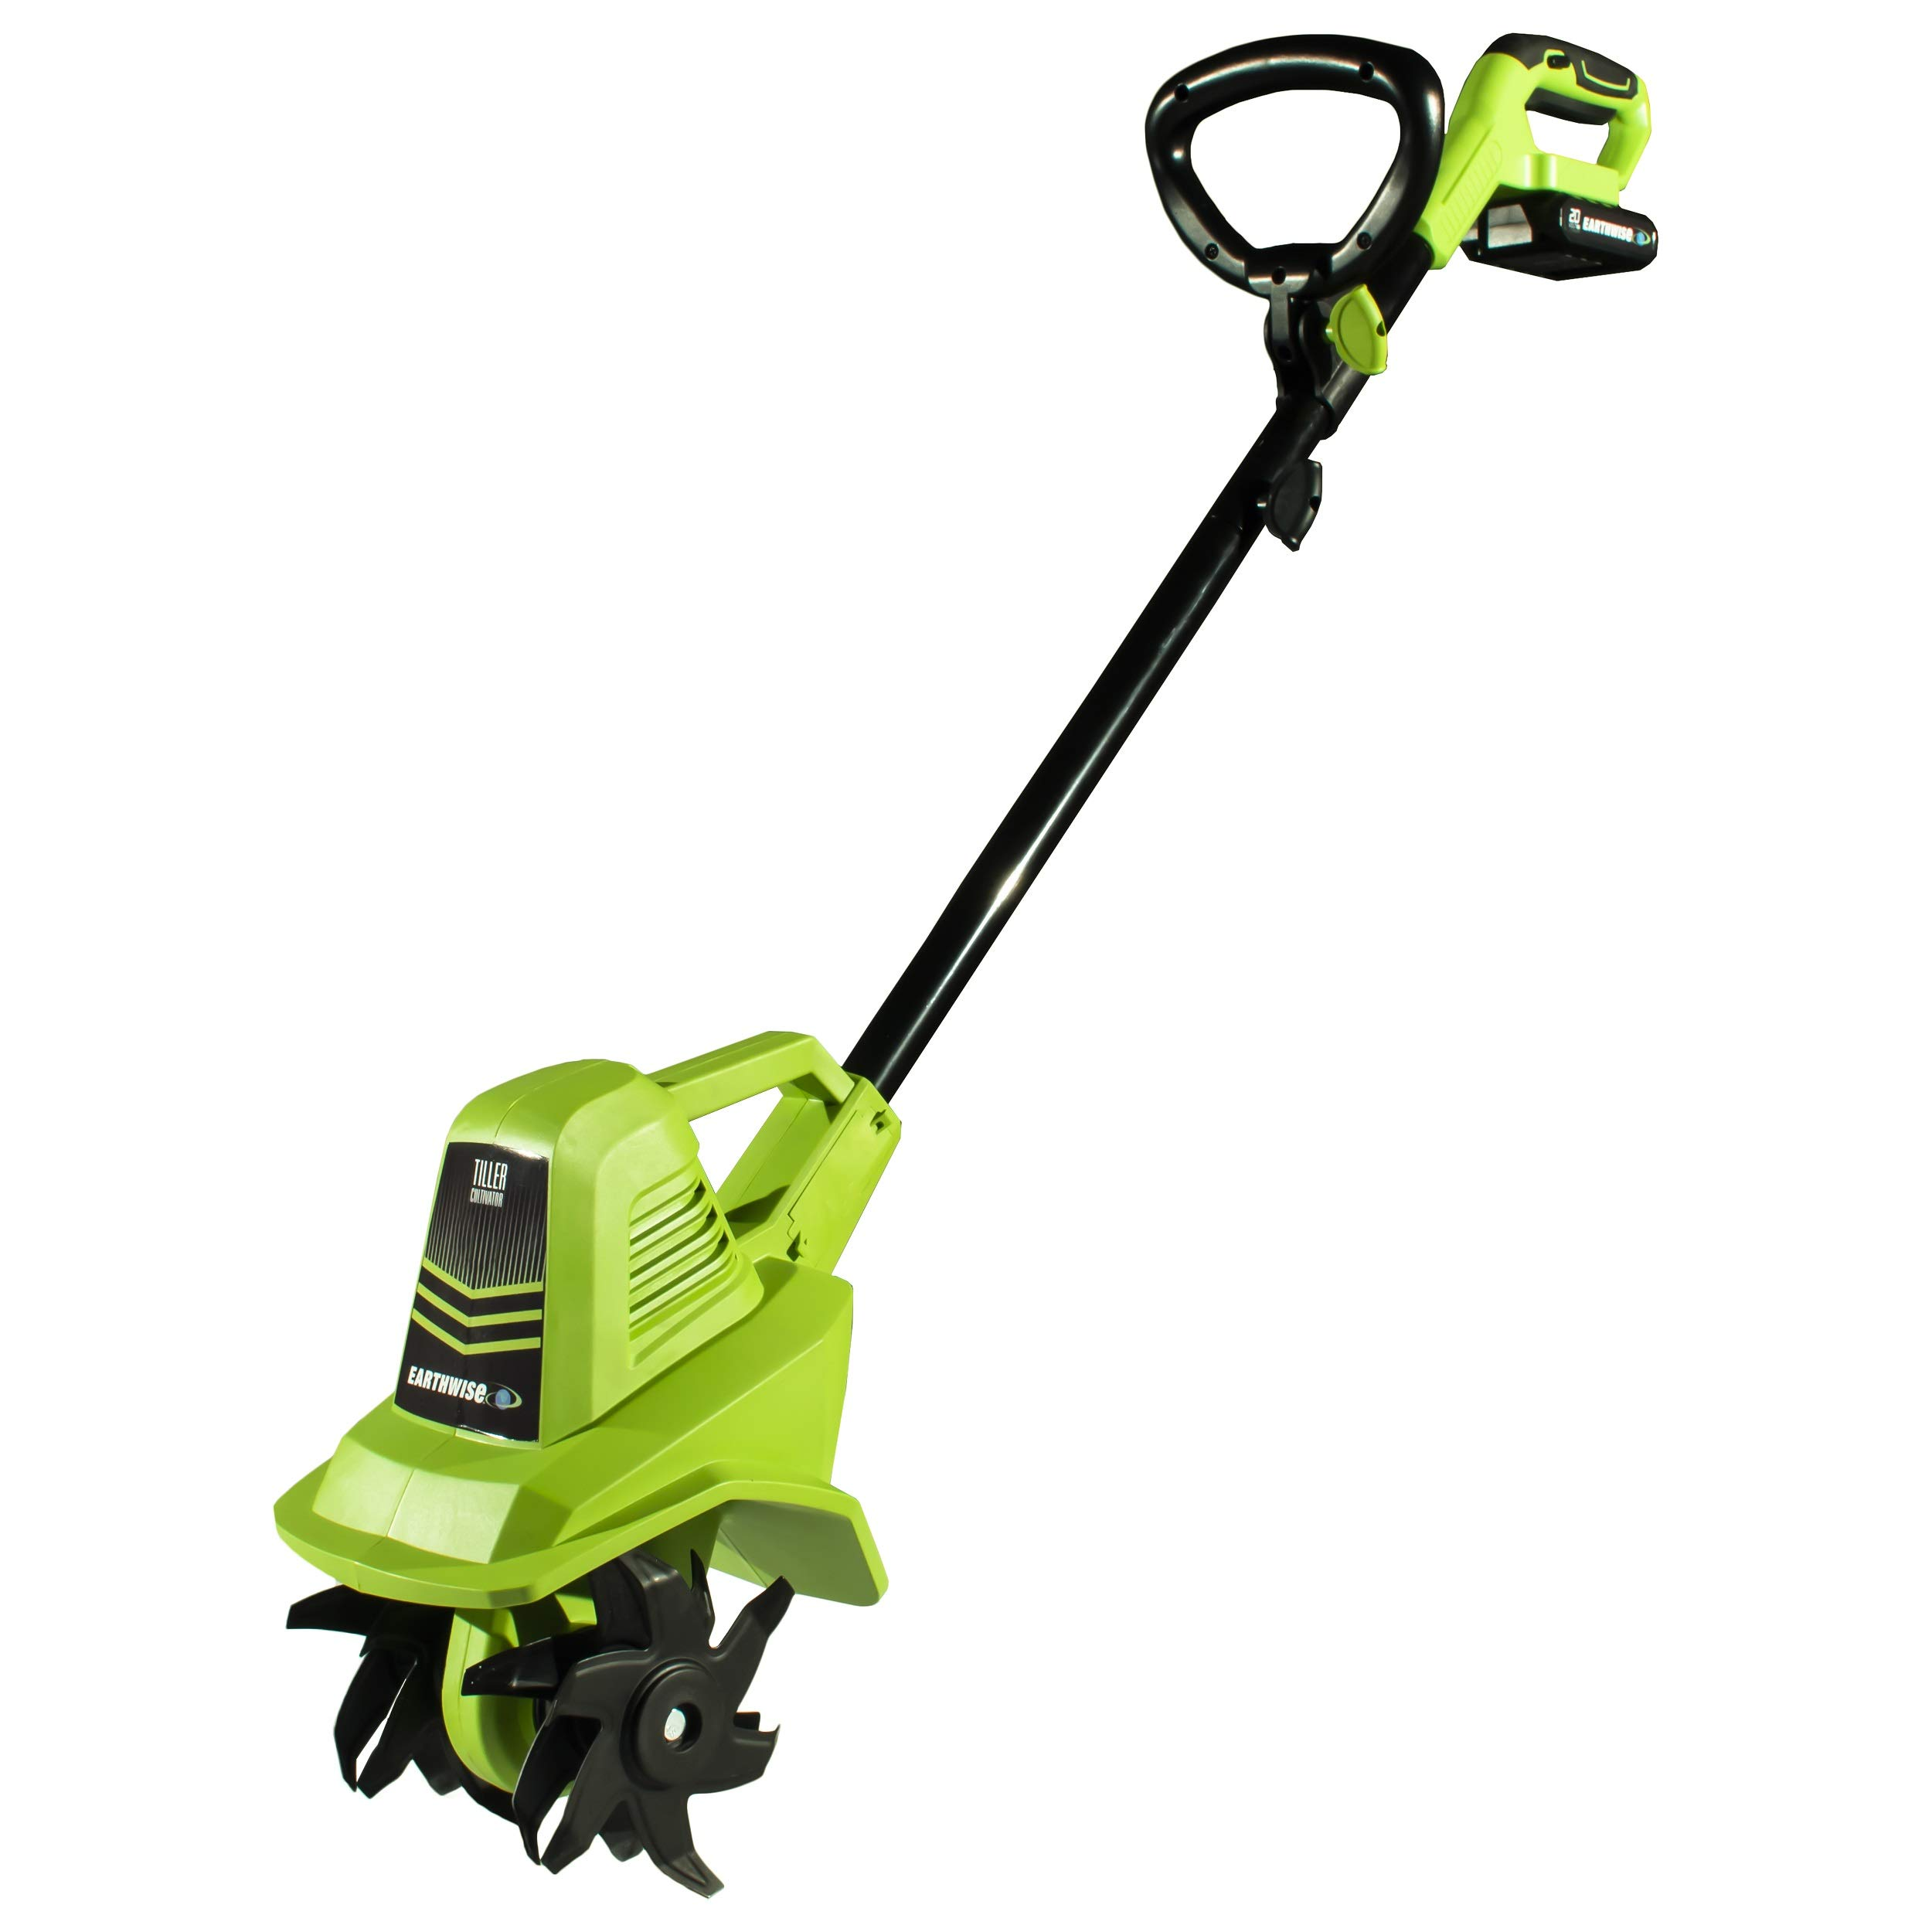 Earthwise TC70020 20-Volt 7.5-Inch Cordless Tiller, (2AH Battery & Fast Charger Included) by Earthwise